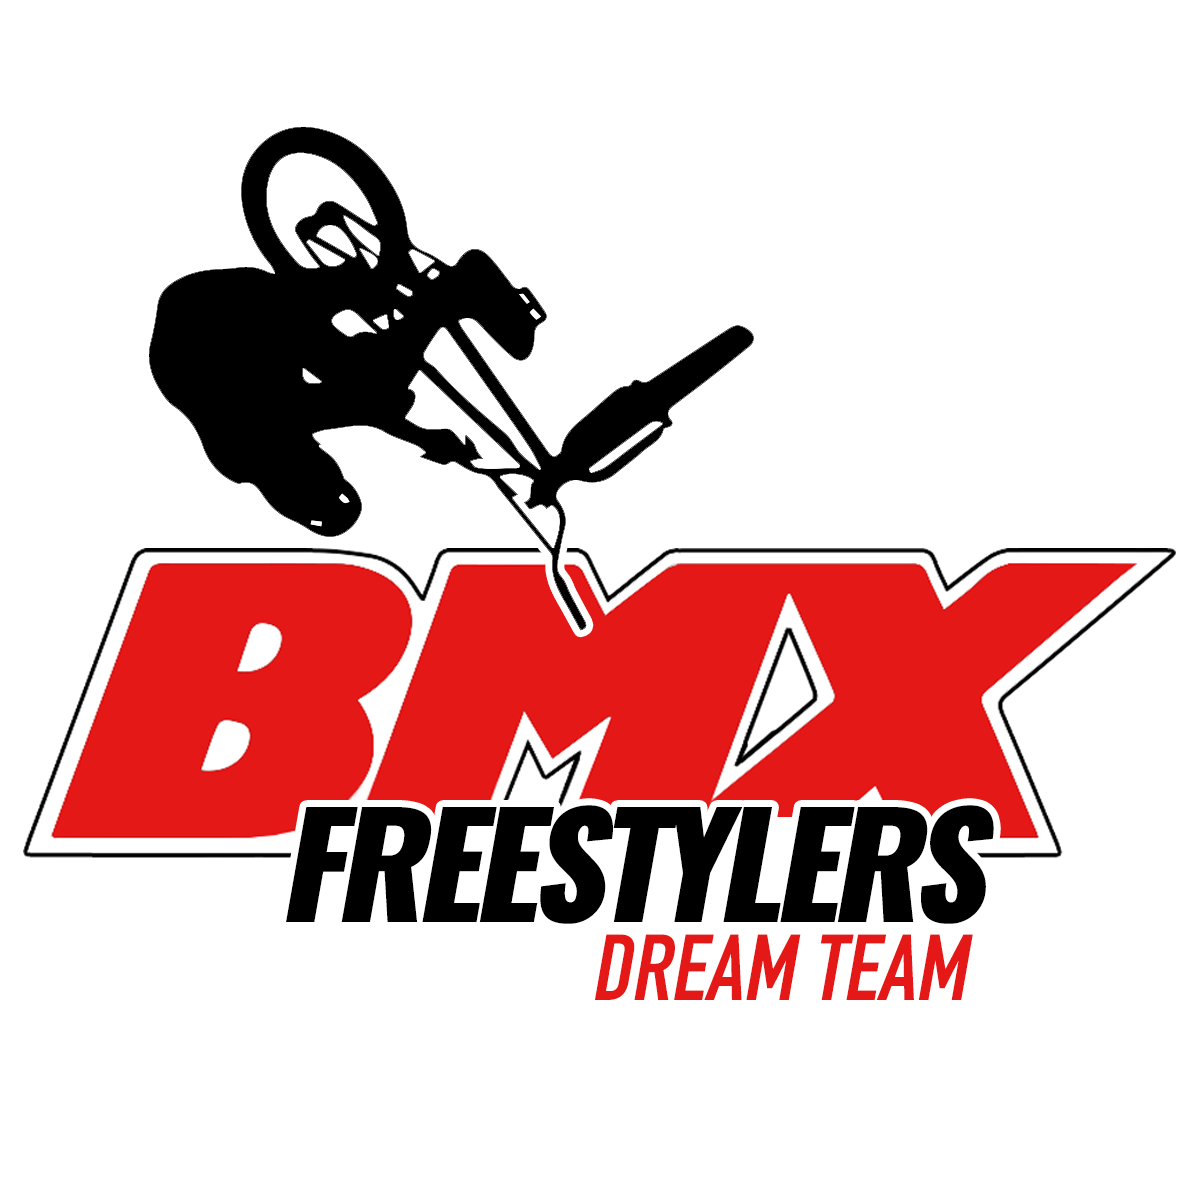 BMX Freestylers Dream Team